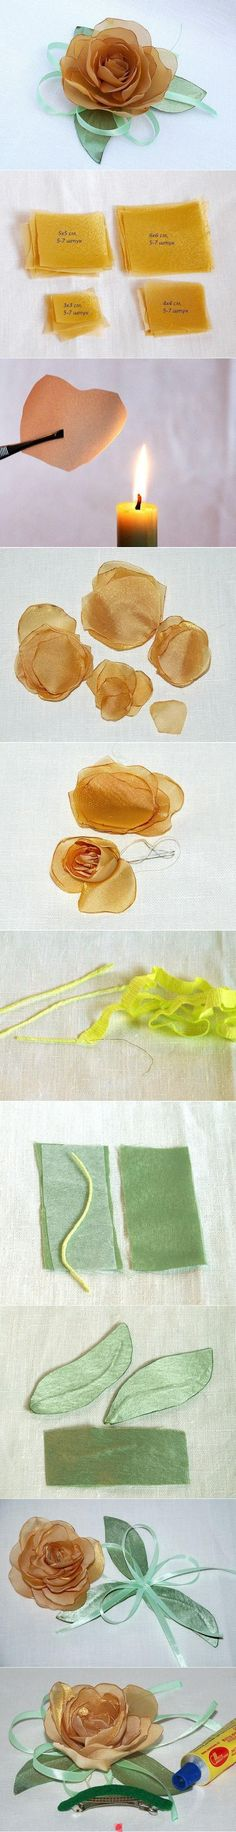 DIY Flowers flowers diy crafts home made easy crafts craft idea crafts ideas diy ideas diy crafts diy idea do it yourself diy projects diy craft handmade Ribbon Art, Diy Ribbon, Ribbon Crafts, Flower Crafts, Fabric Crafts, Ribbon Flower, Diy Bow, Cloth Flowers, Felt Flowers